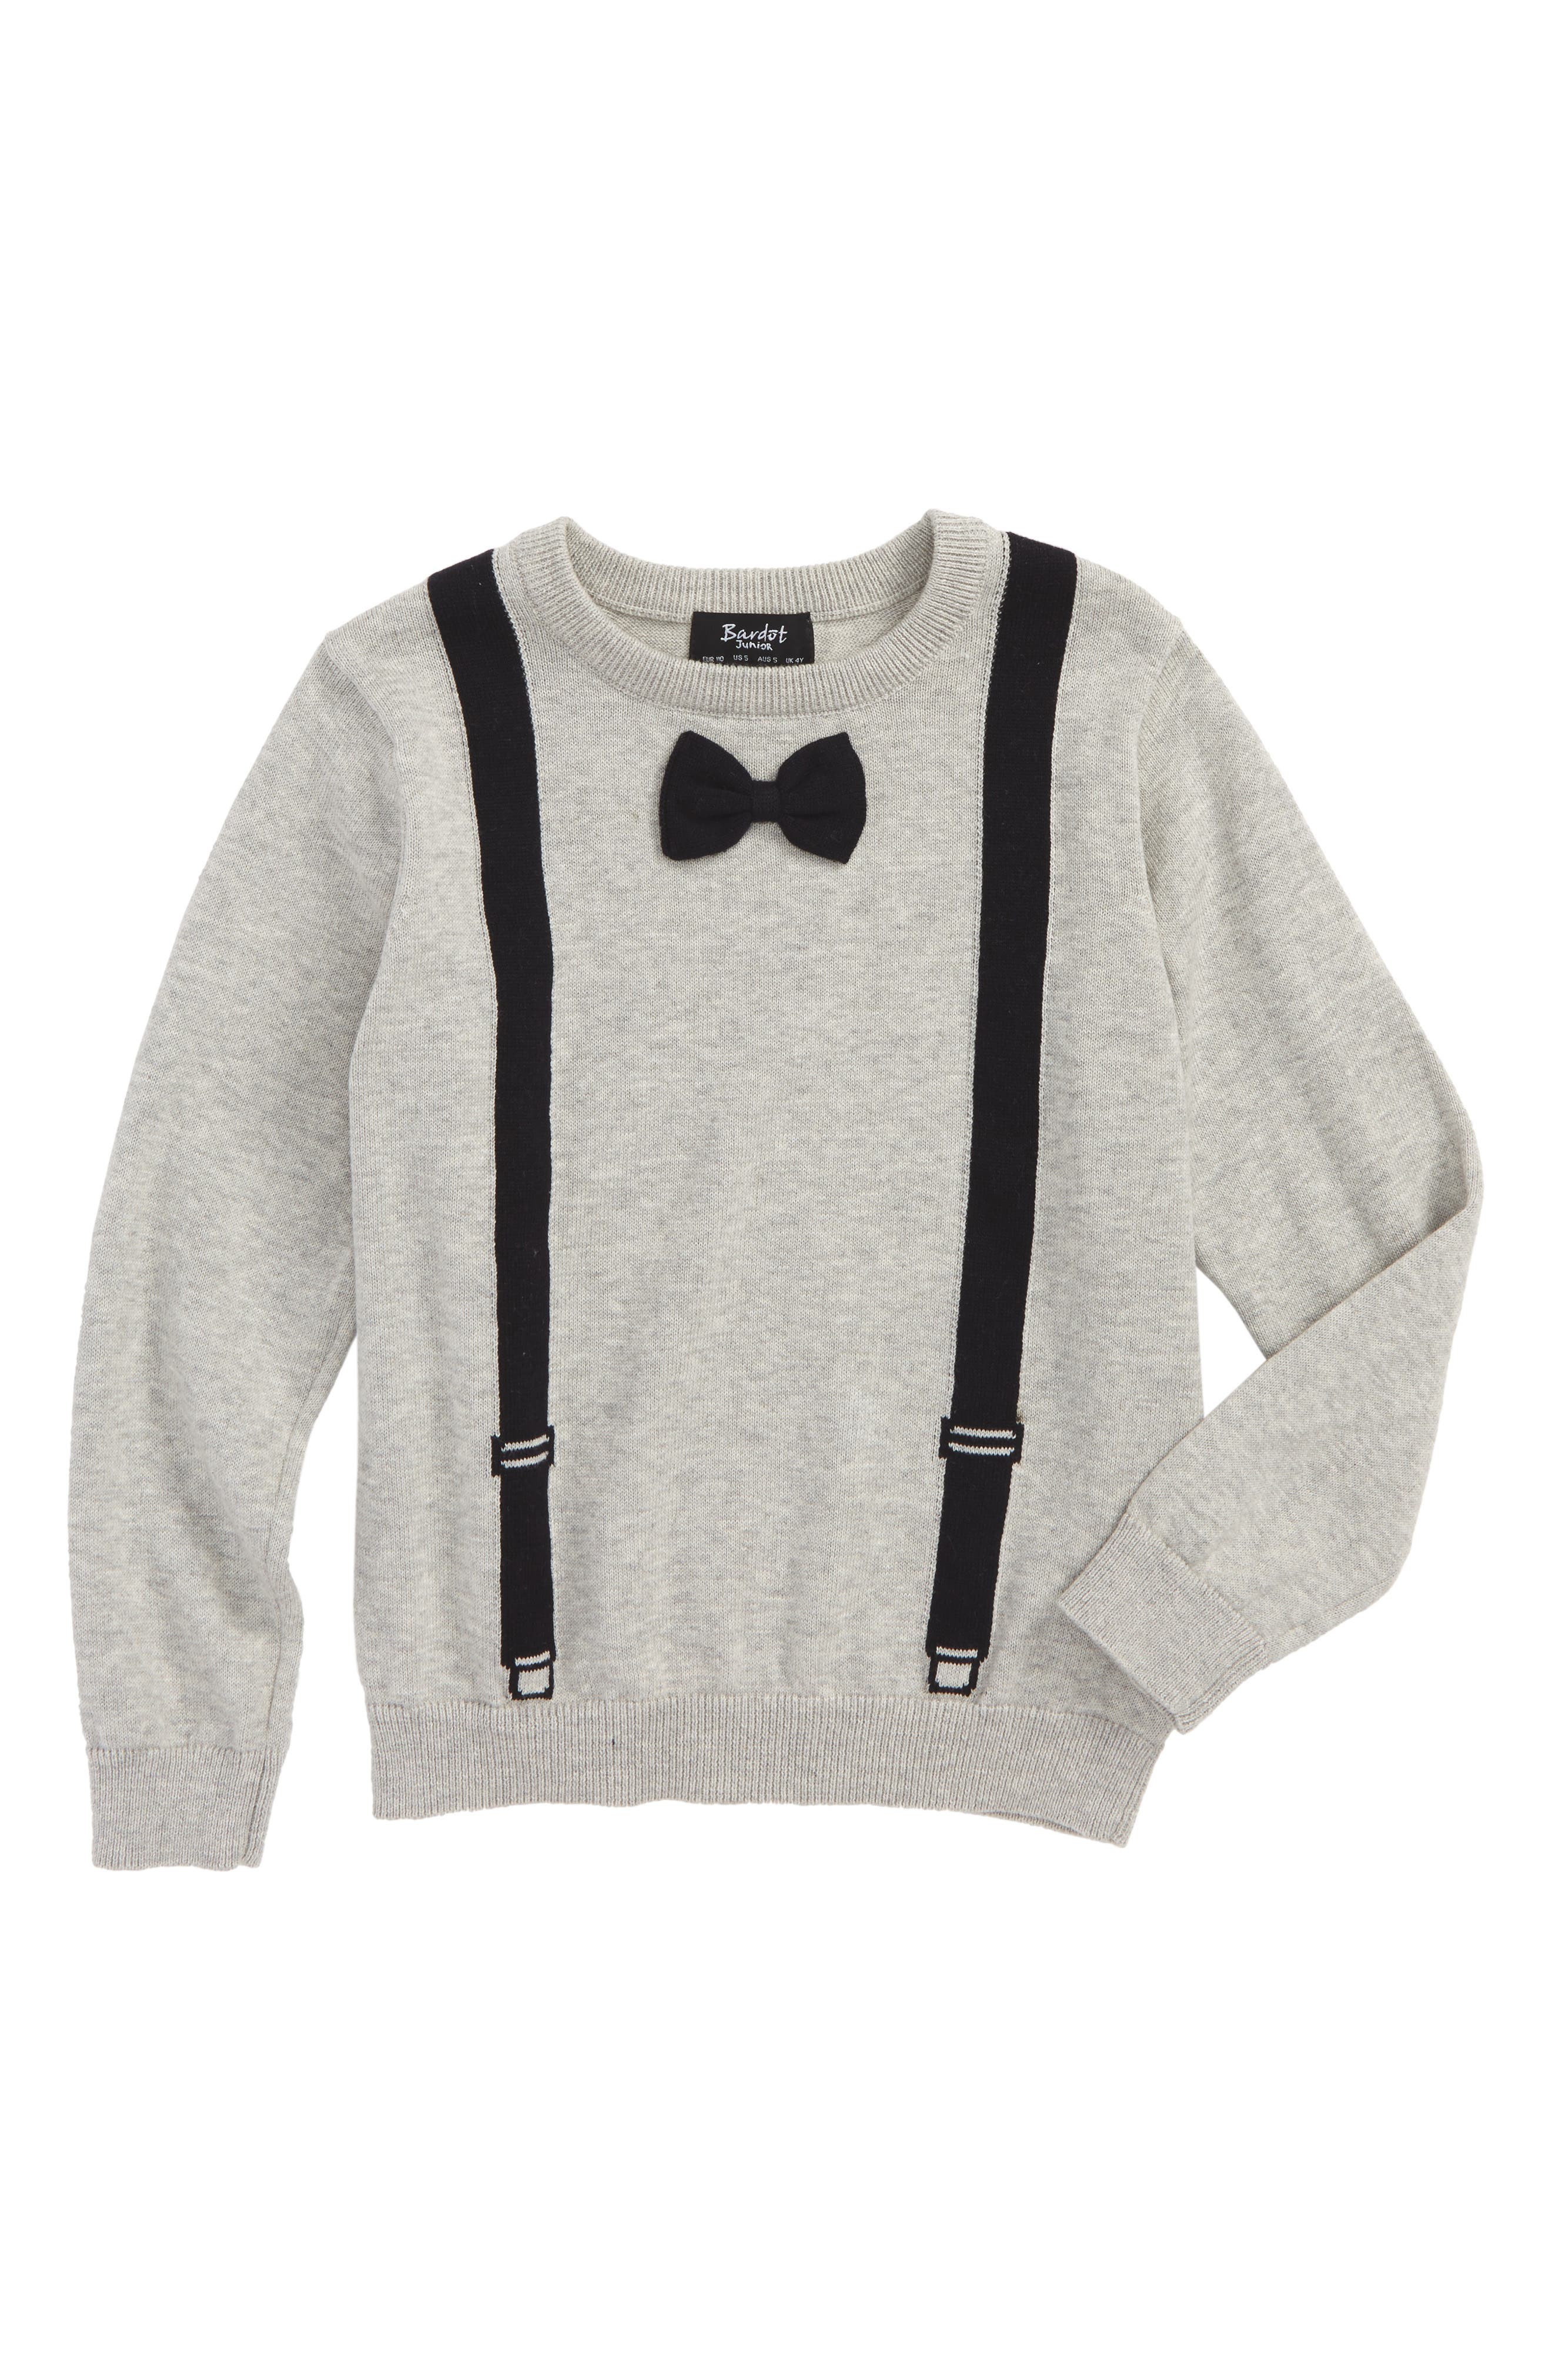 Bardot Junior Trompe l'Oeil Pullover Sweater (Toddler Boys & Little Boys)